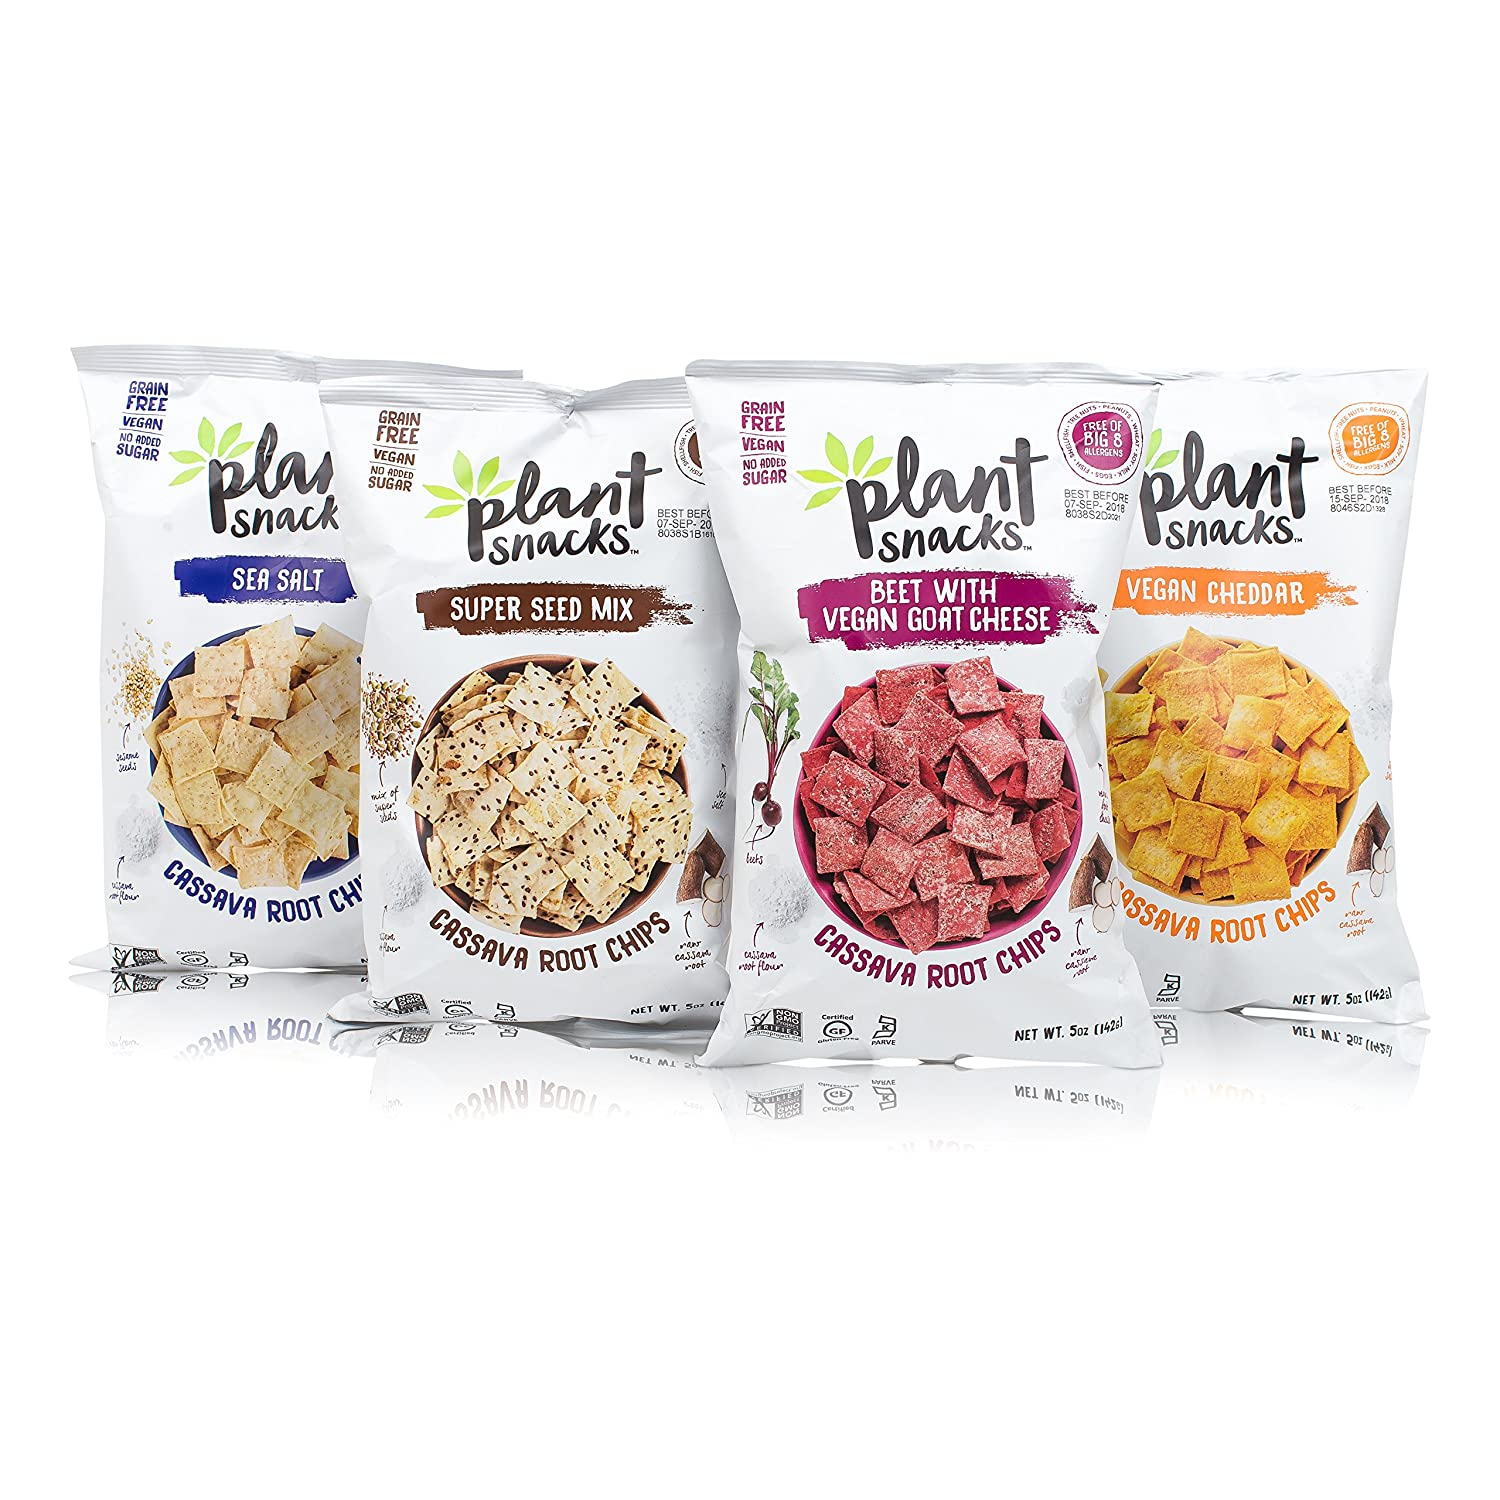 Plant Snacks Variety Pack - Cheddar, Sea Salt, Beet with Goat Cheese, Super Seeds Cassava Root Chips, Vegan, Big-8 Allergen Free, Non-GMO, Gluten and Grain Free, No Added Sugar, 5 oz Bags, Pack of 4